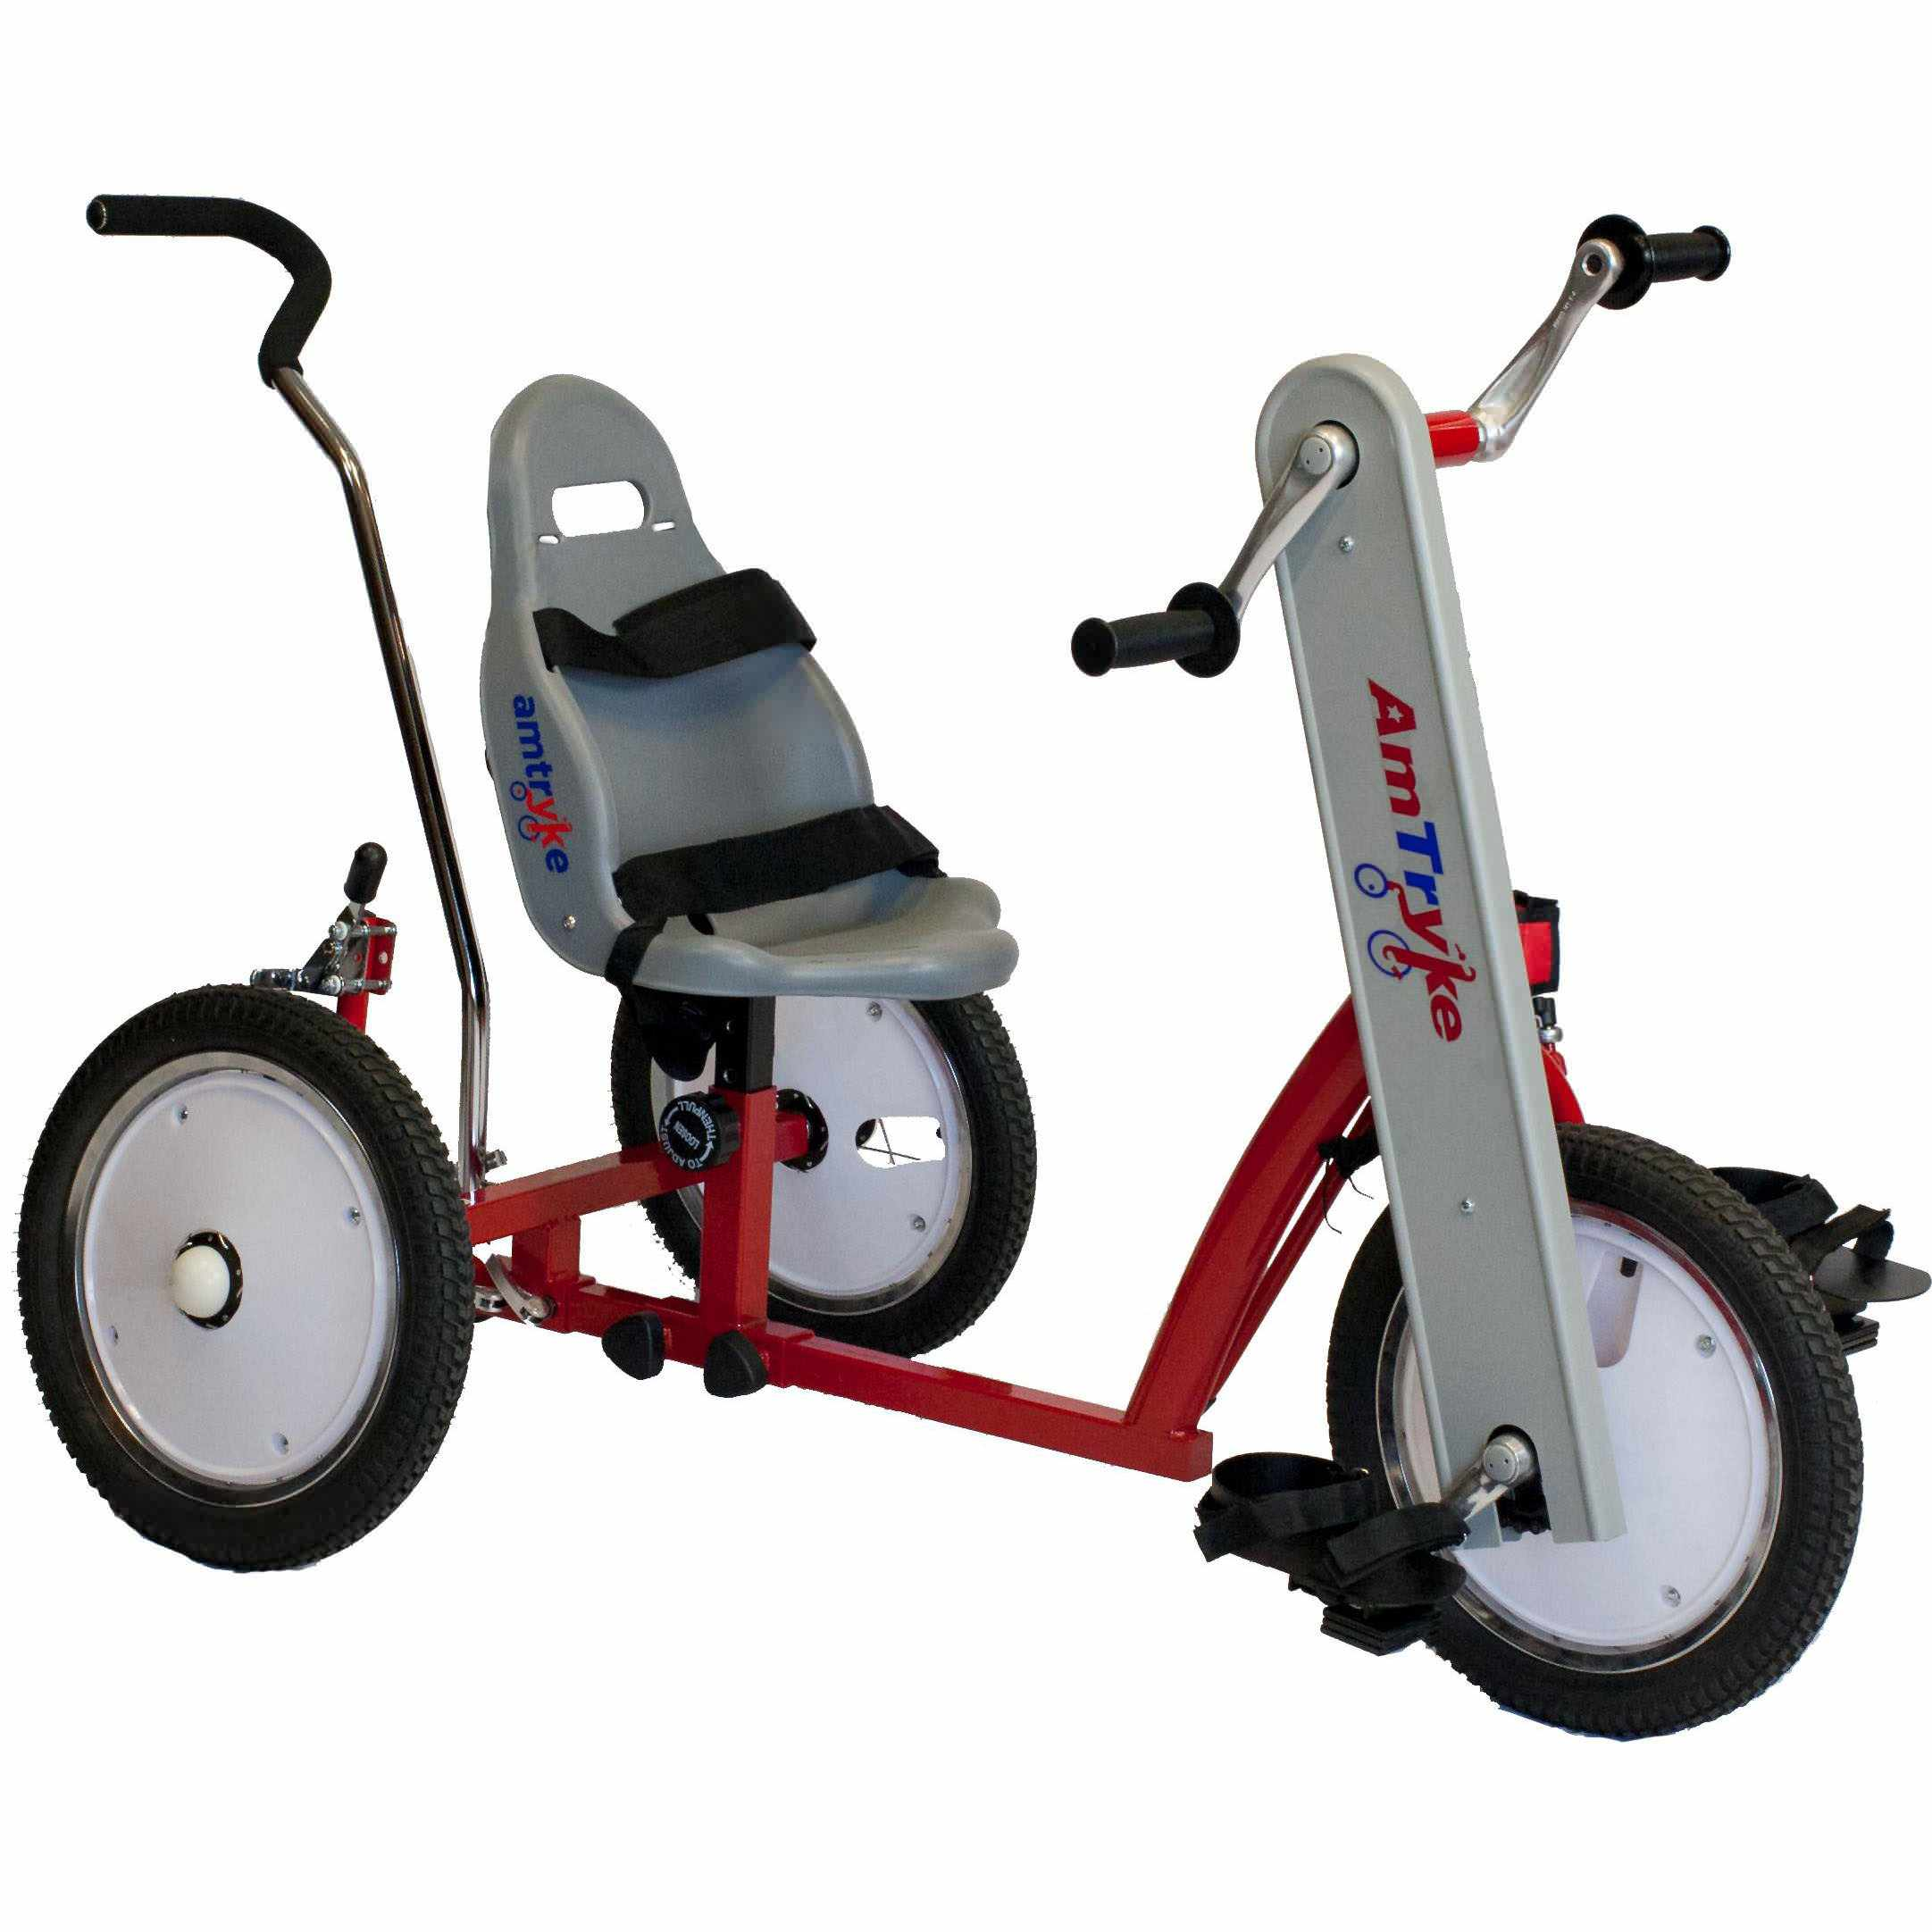 Amtryke AM-12 tricycle with 1600 seating system